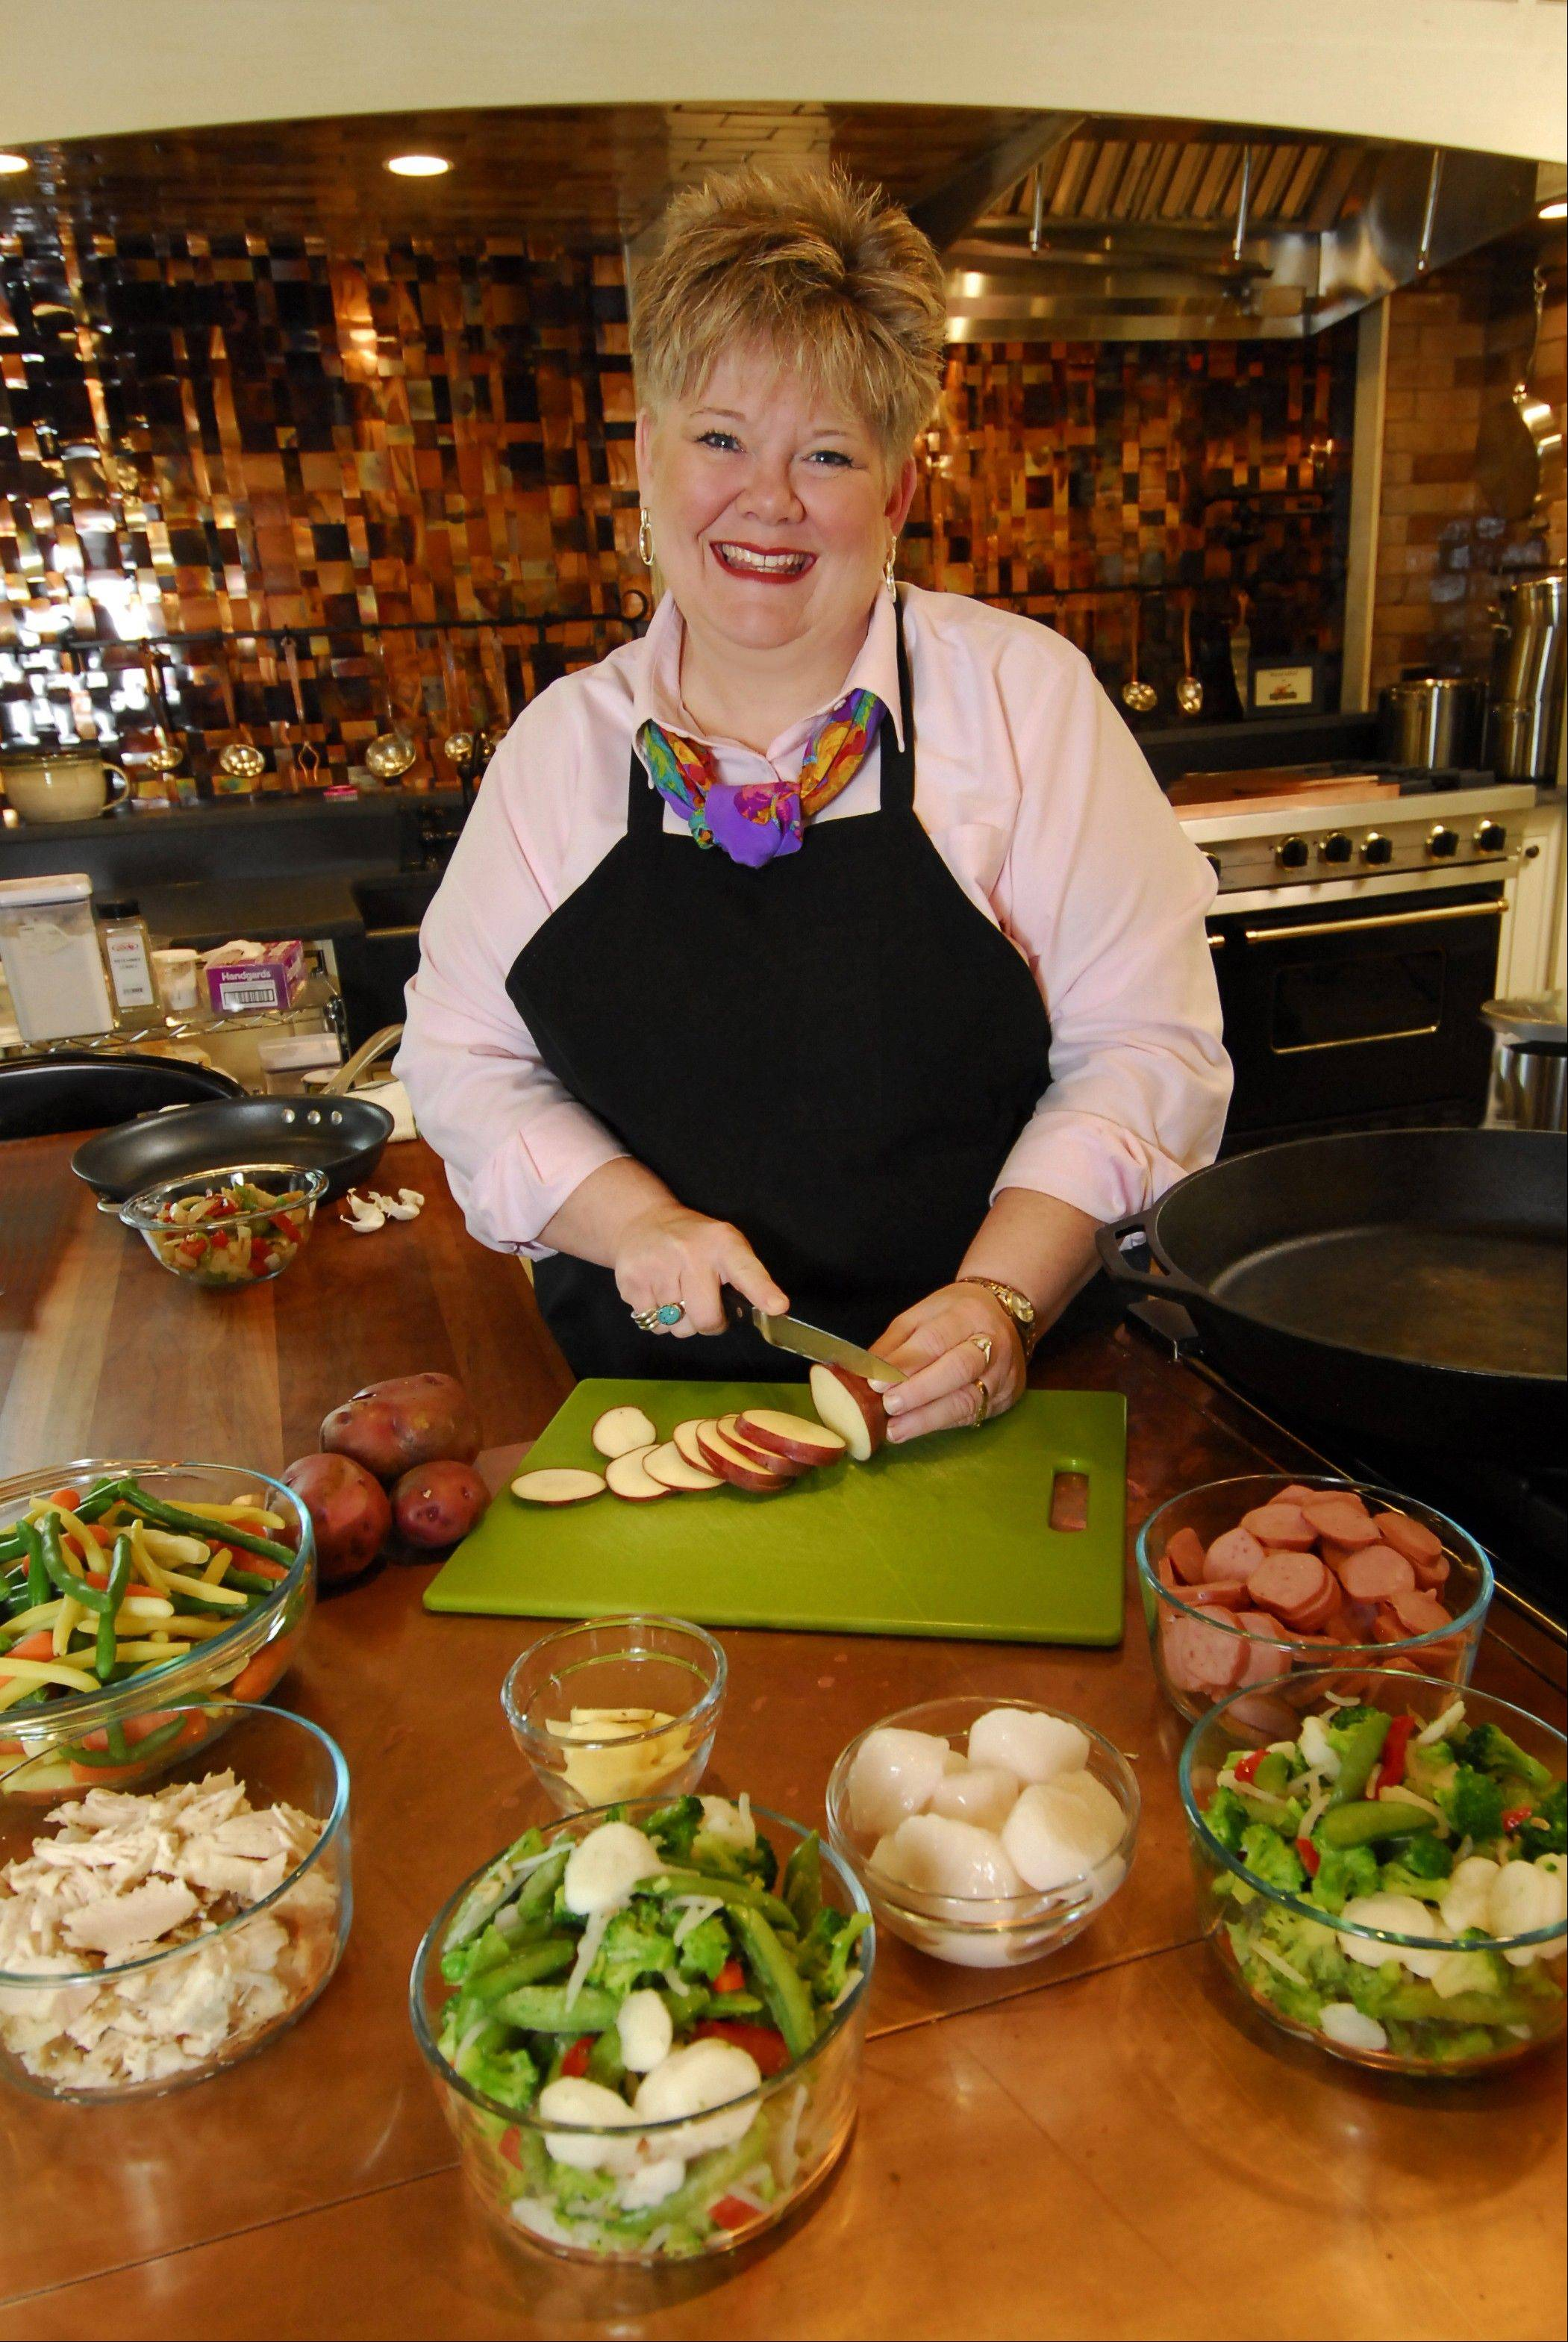 Silver Dollar City's Culinary & Craft School offers classes taught by culinary experts, such as Debbie Dance Uhrig.